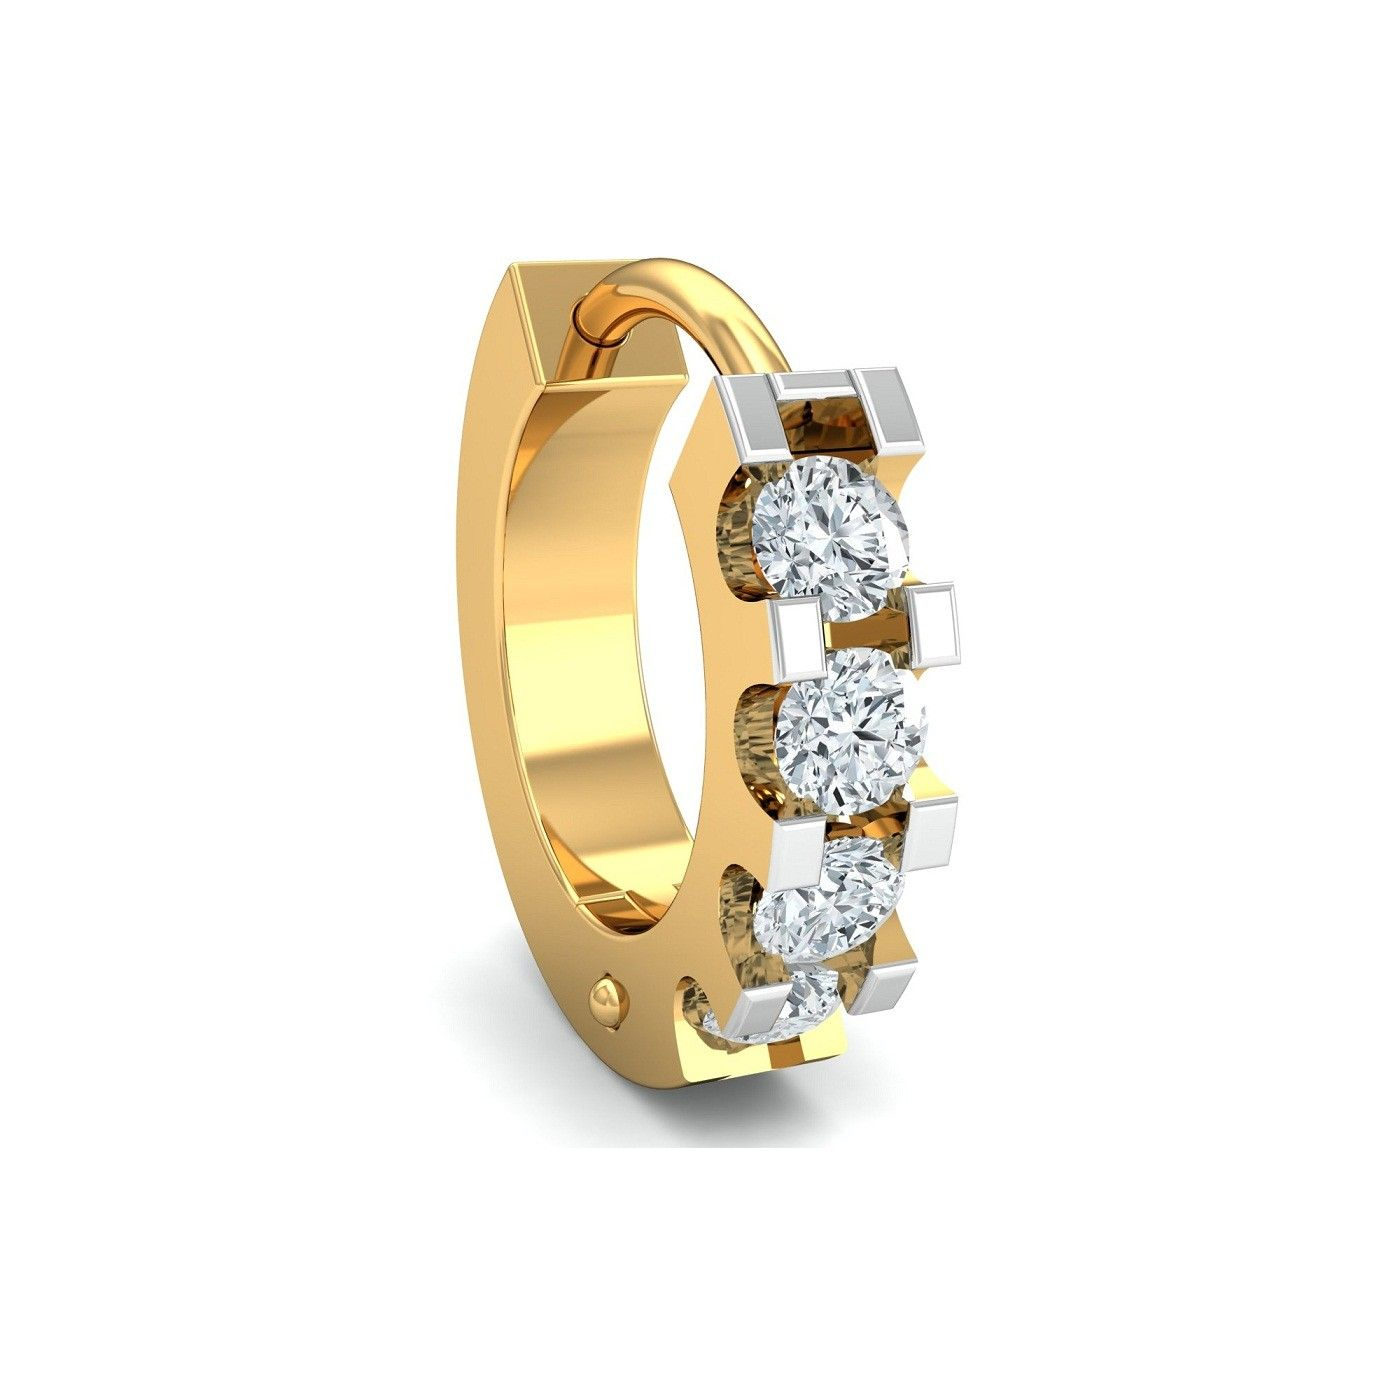 Gold Diamond Nose Ring Online Shopping Certified Hallmarked Shop